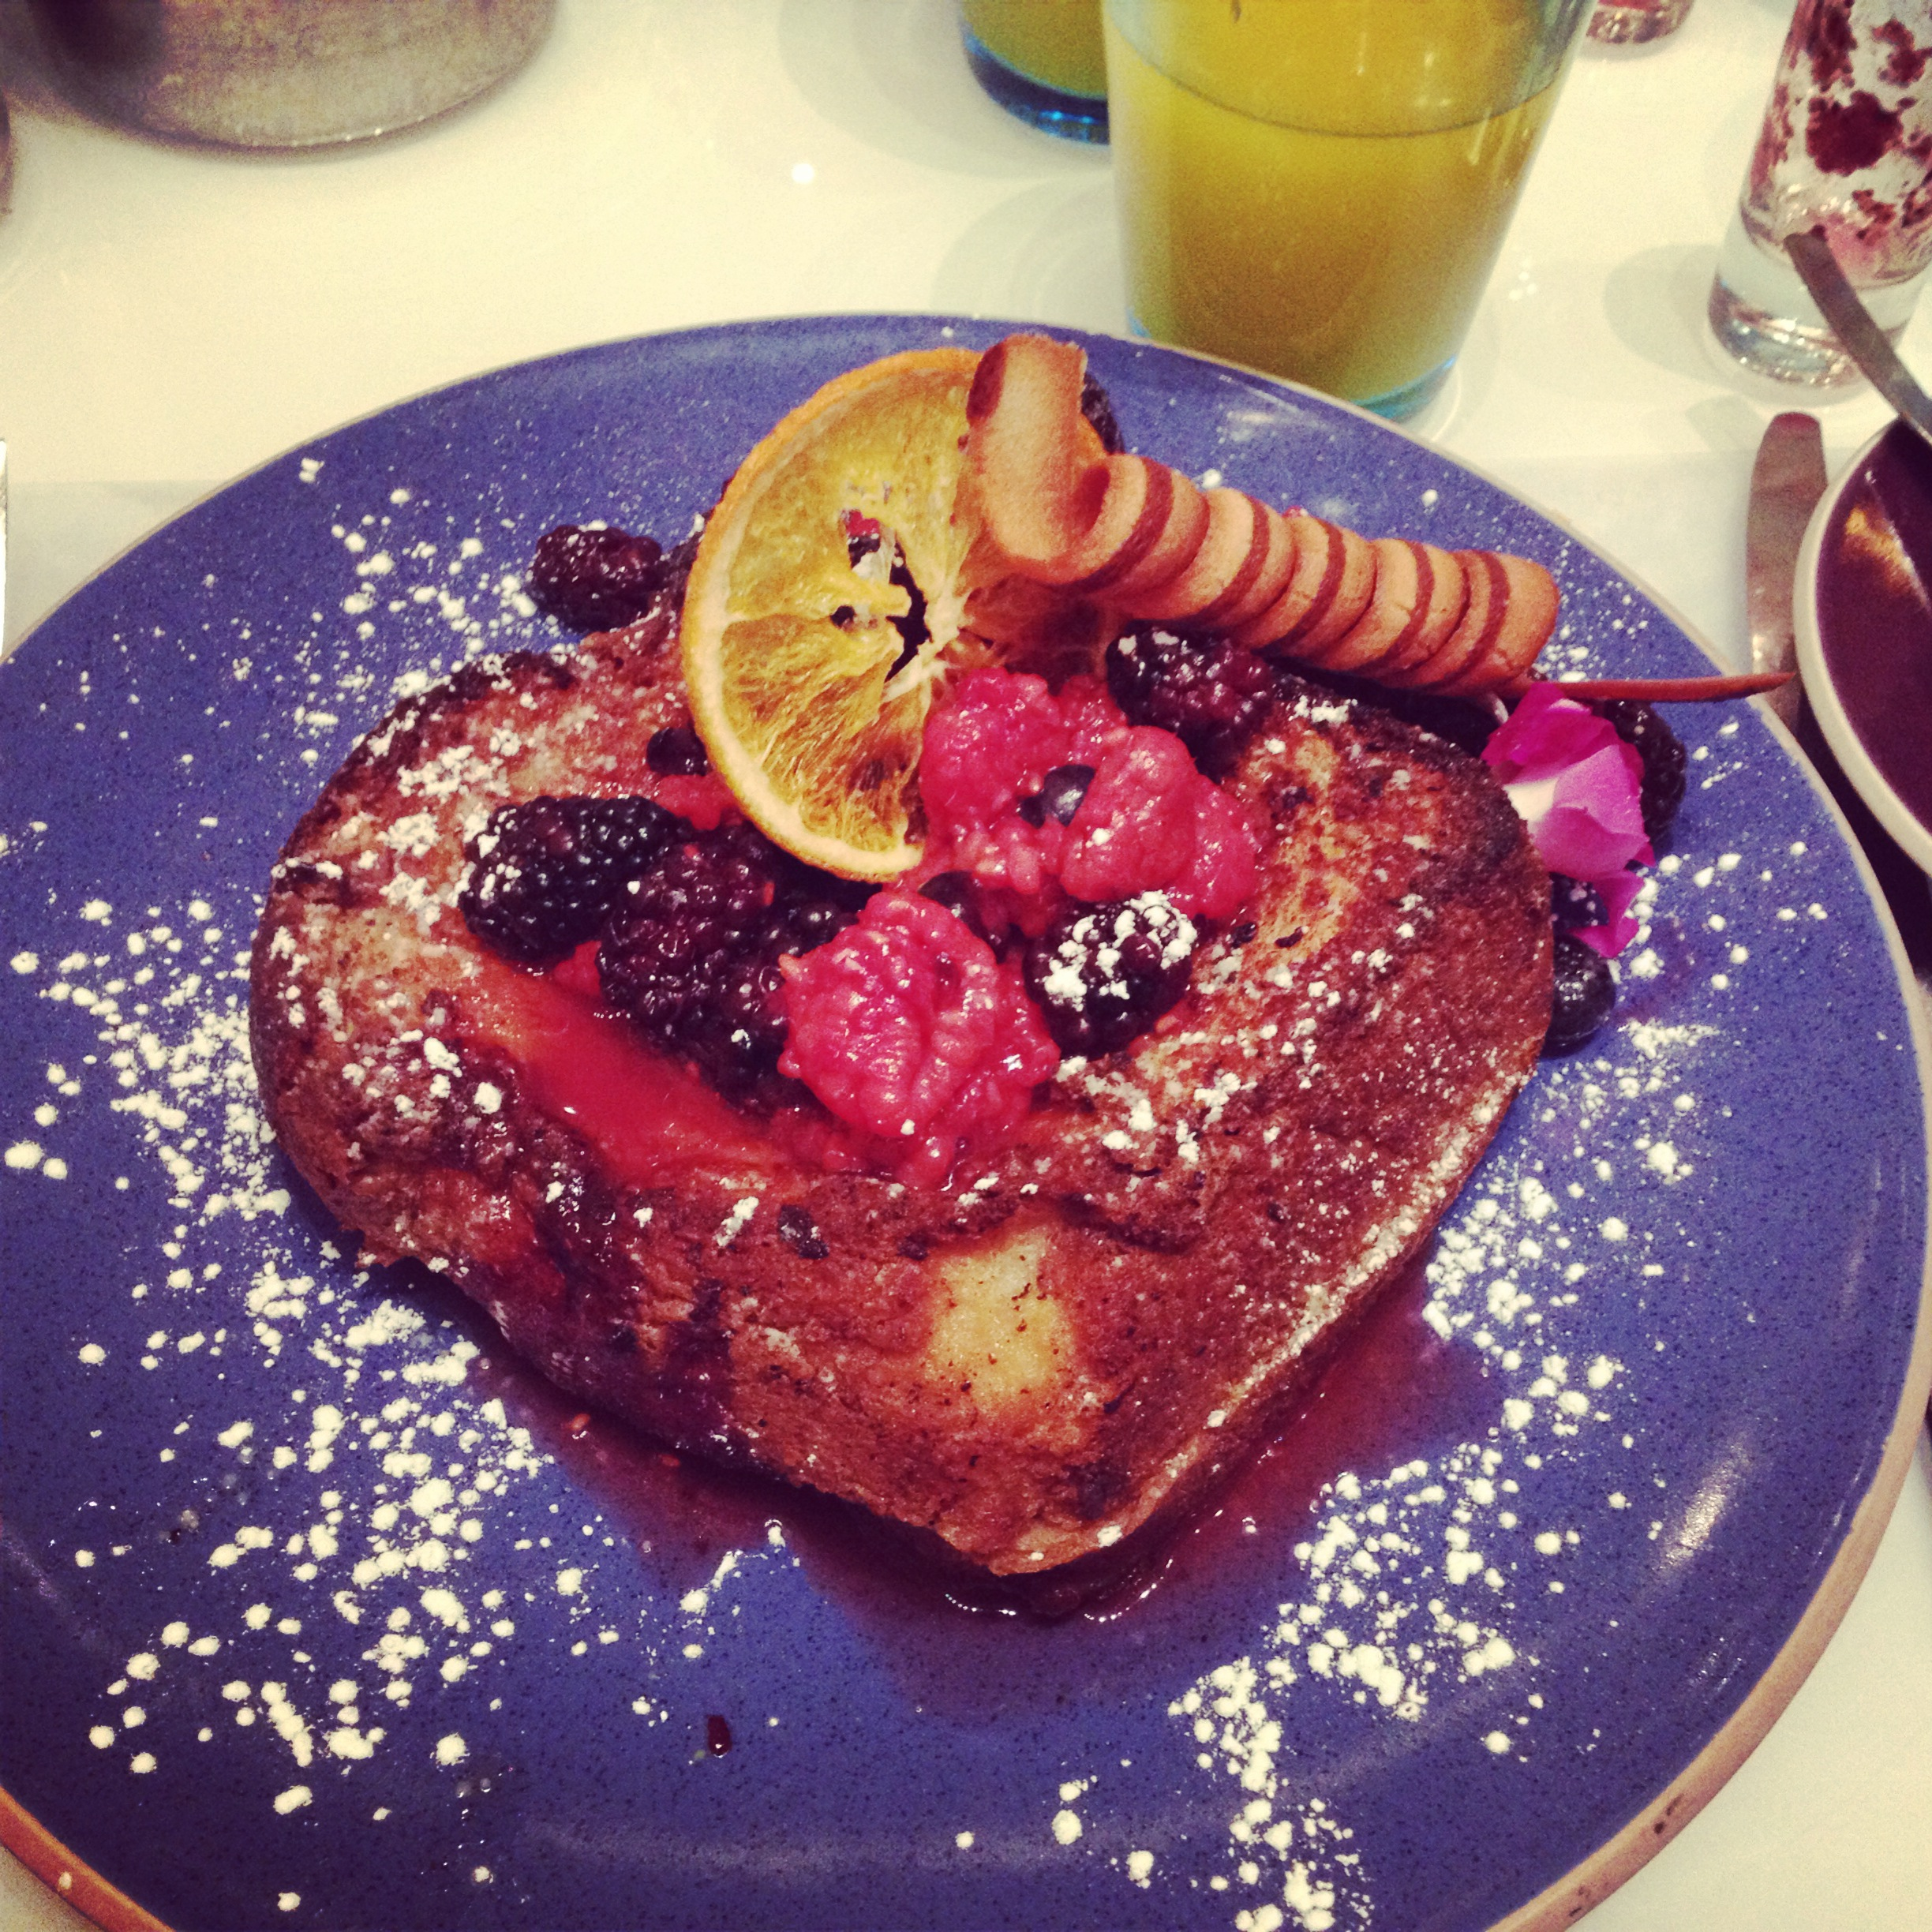 Very berry brioche french toast - Norma's at Le Parker Meridien, Midtown